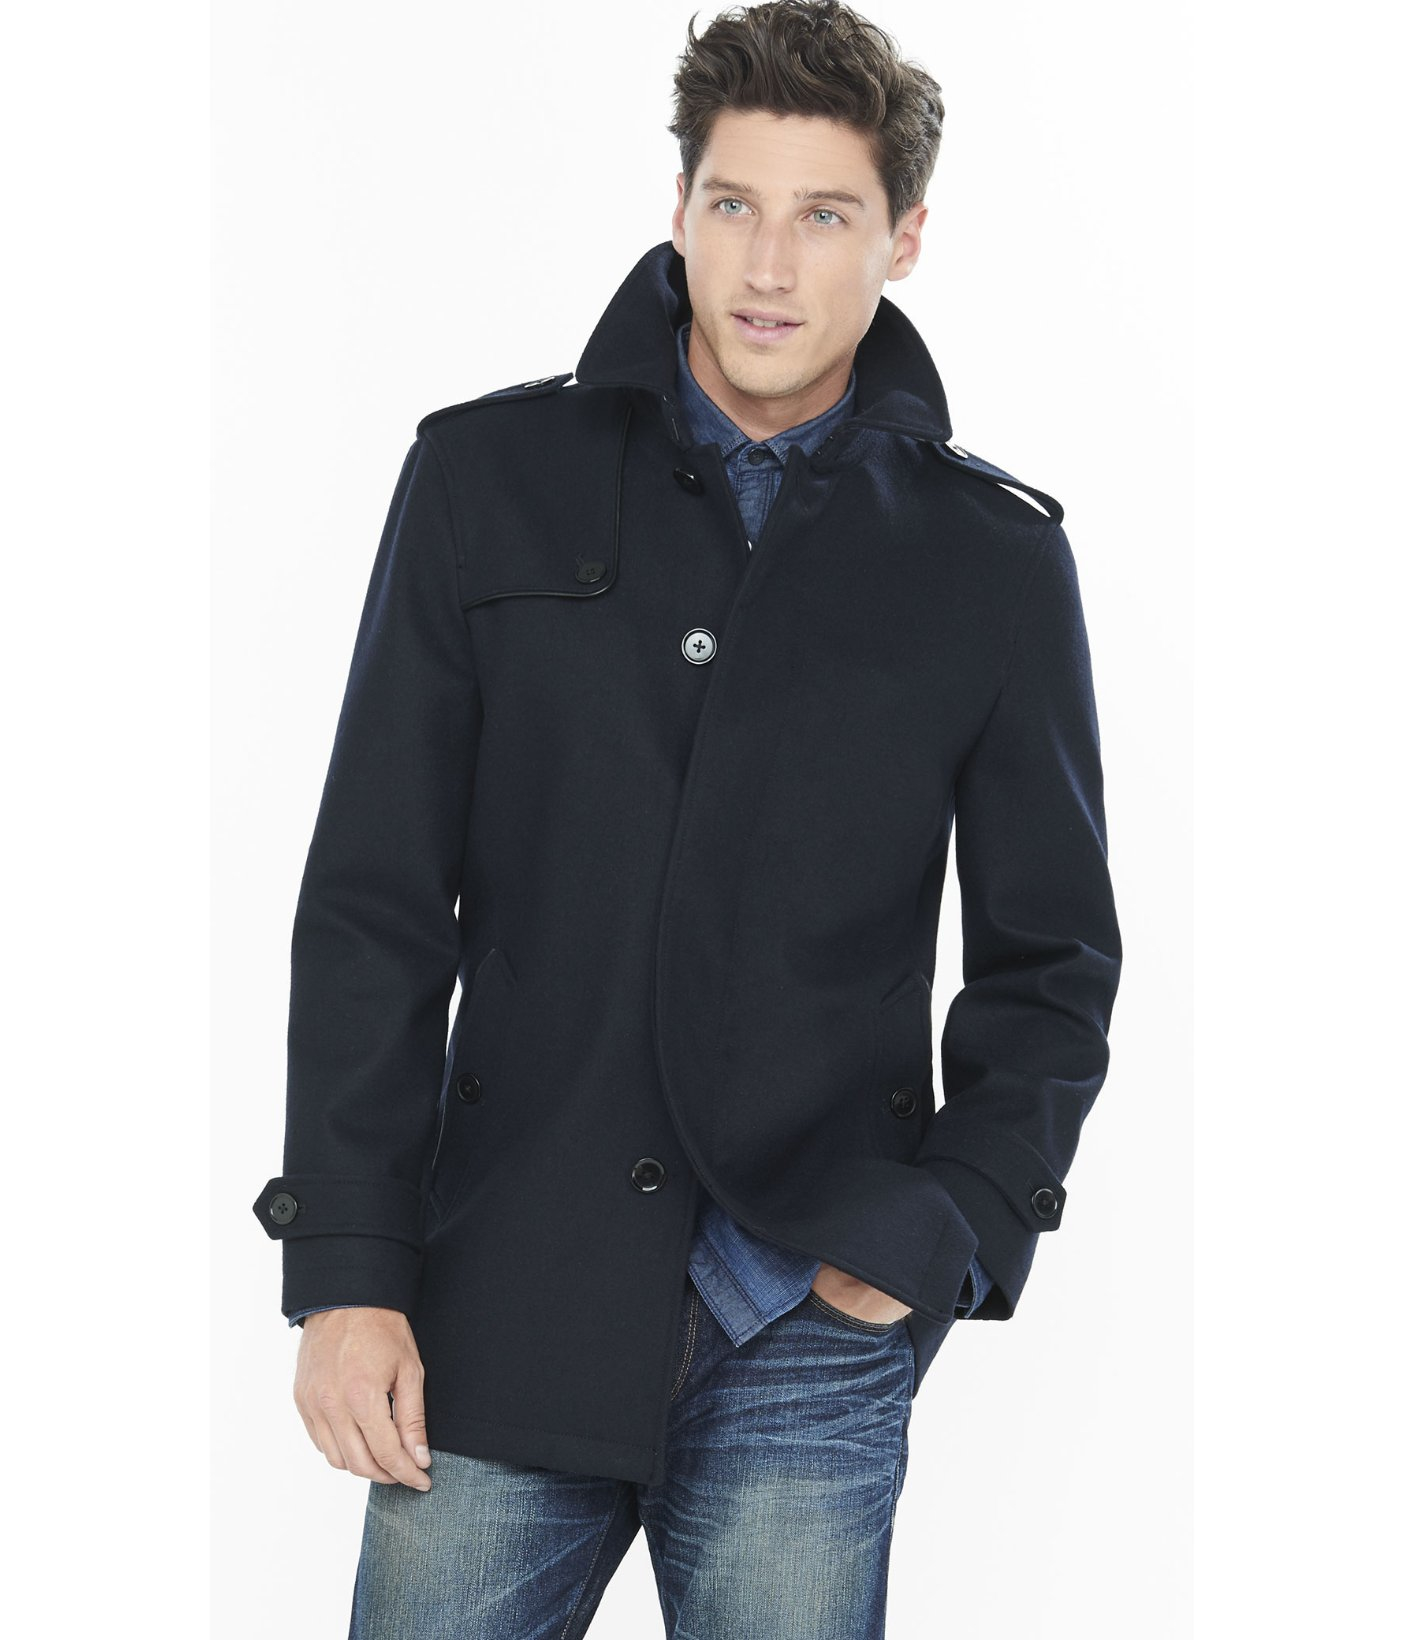 8fecb6a4b535 Navy Blue Wool Coat Mens - Best Picture Of Blue Imageve.Org